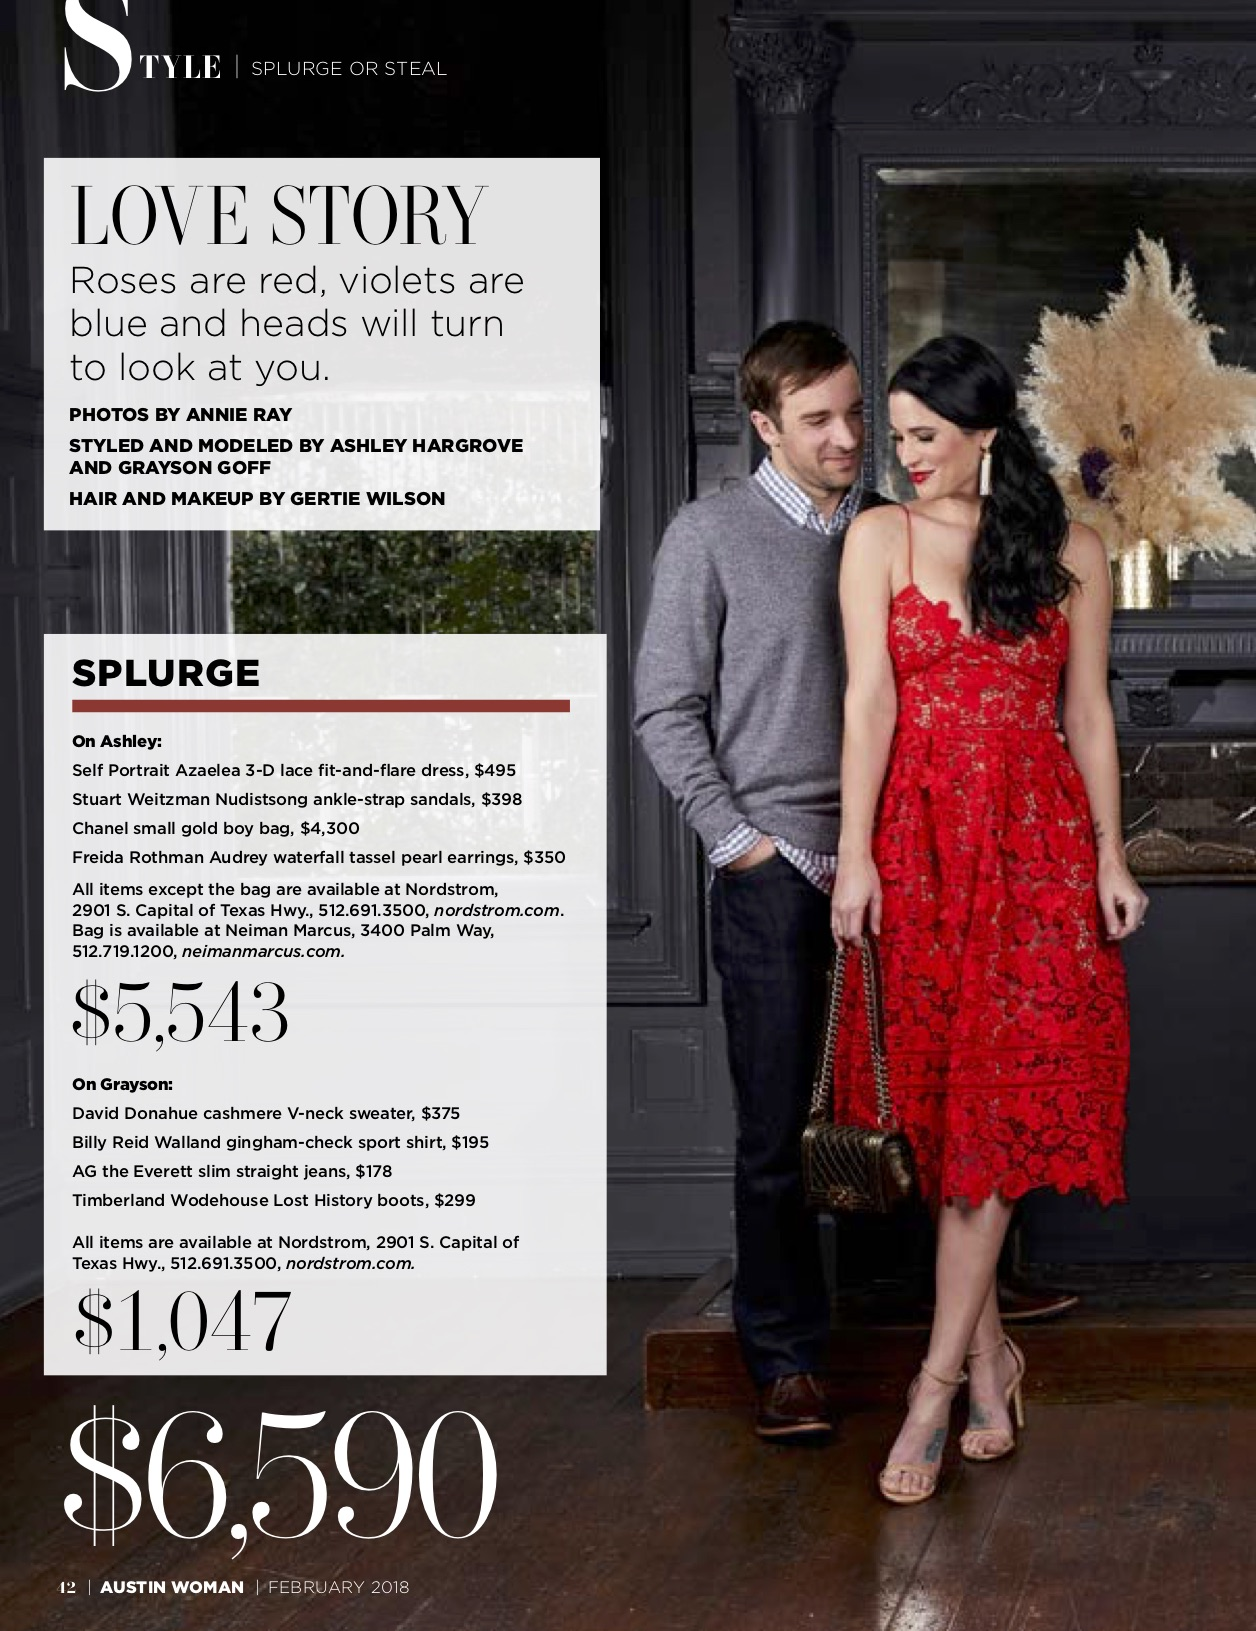 DTKAustin shares her recent Splurge or Steal Column about Date Night Ideas for him and her in Austin Woman Magazine just in time for Valentine's Day! || Dressed to Kill #valentineoutfits #datenightoutfit #reddress